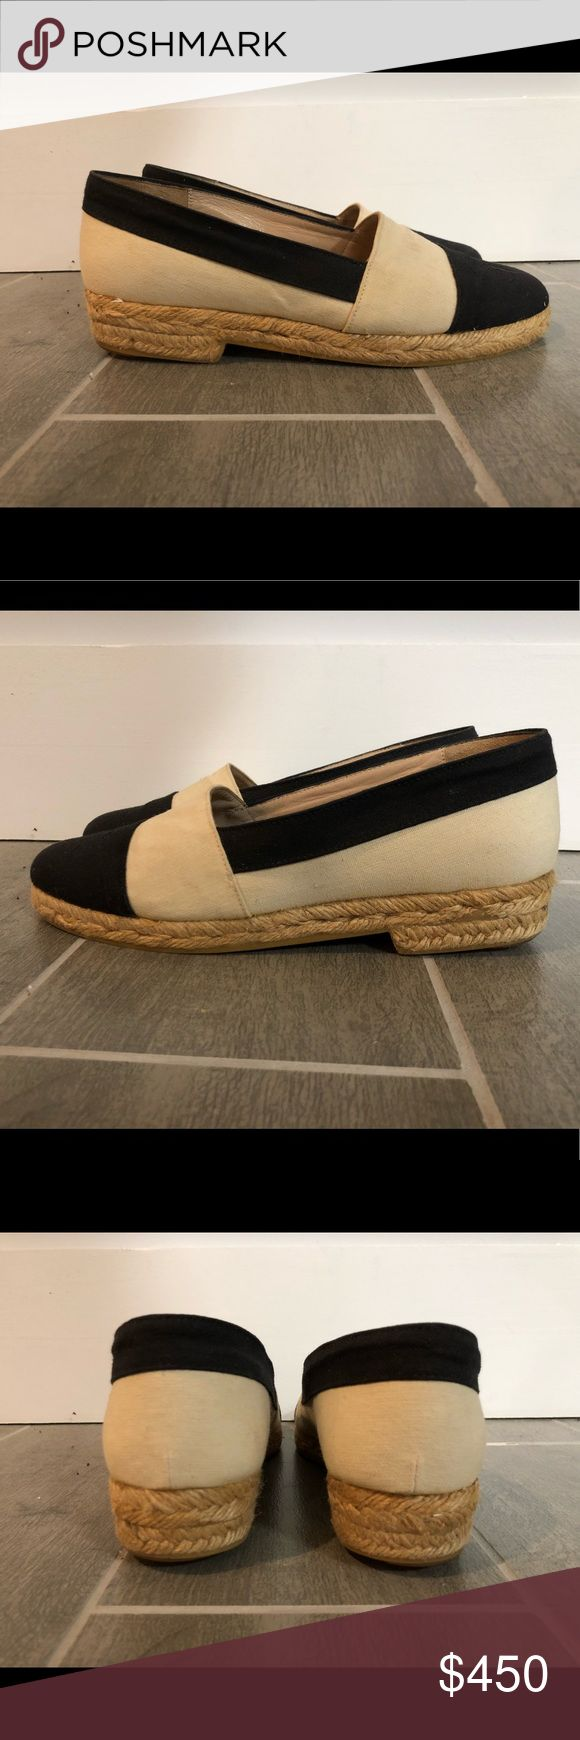 CHANEL s38 black & cream cap toe canvas espadrille Beautiful, comfortable, sophisticated Chanel espadrille flats constructed of canvas. 'CC' logo embroidered on the toe box. Features short platform and small heel. Leather insole, canvas & rubber exterior. CHANEL Shoes Espadrilles